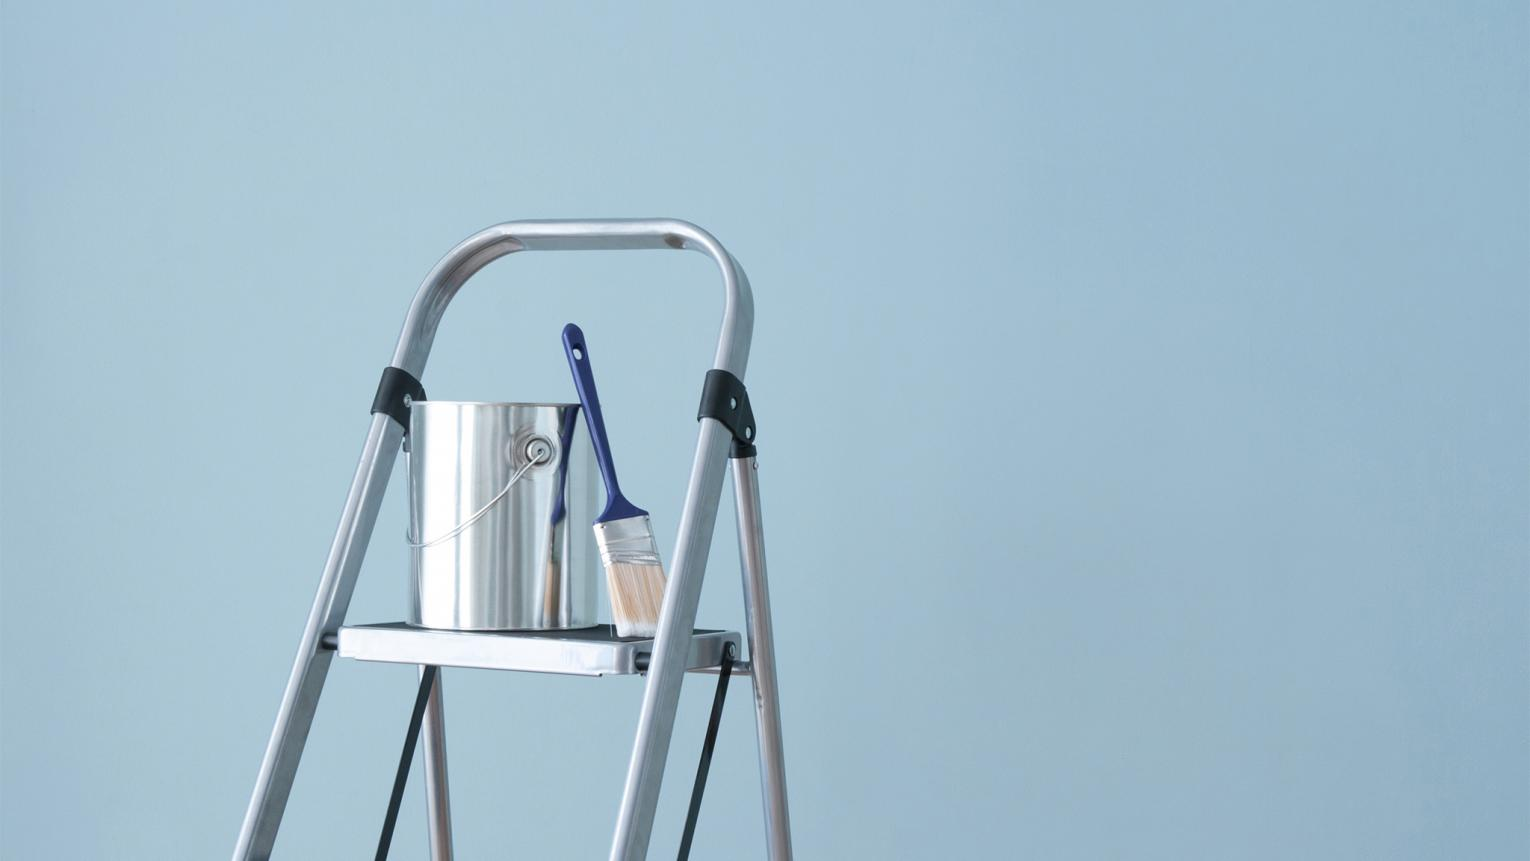 Hiring a painter? These five questions will help you find the perfect painter for your home decorating project.